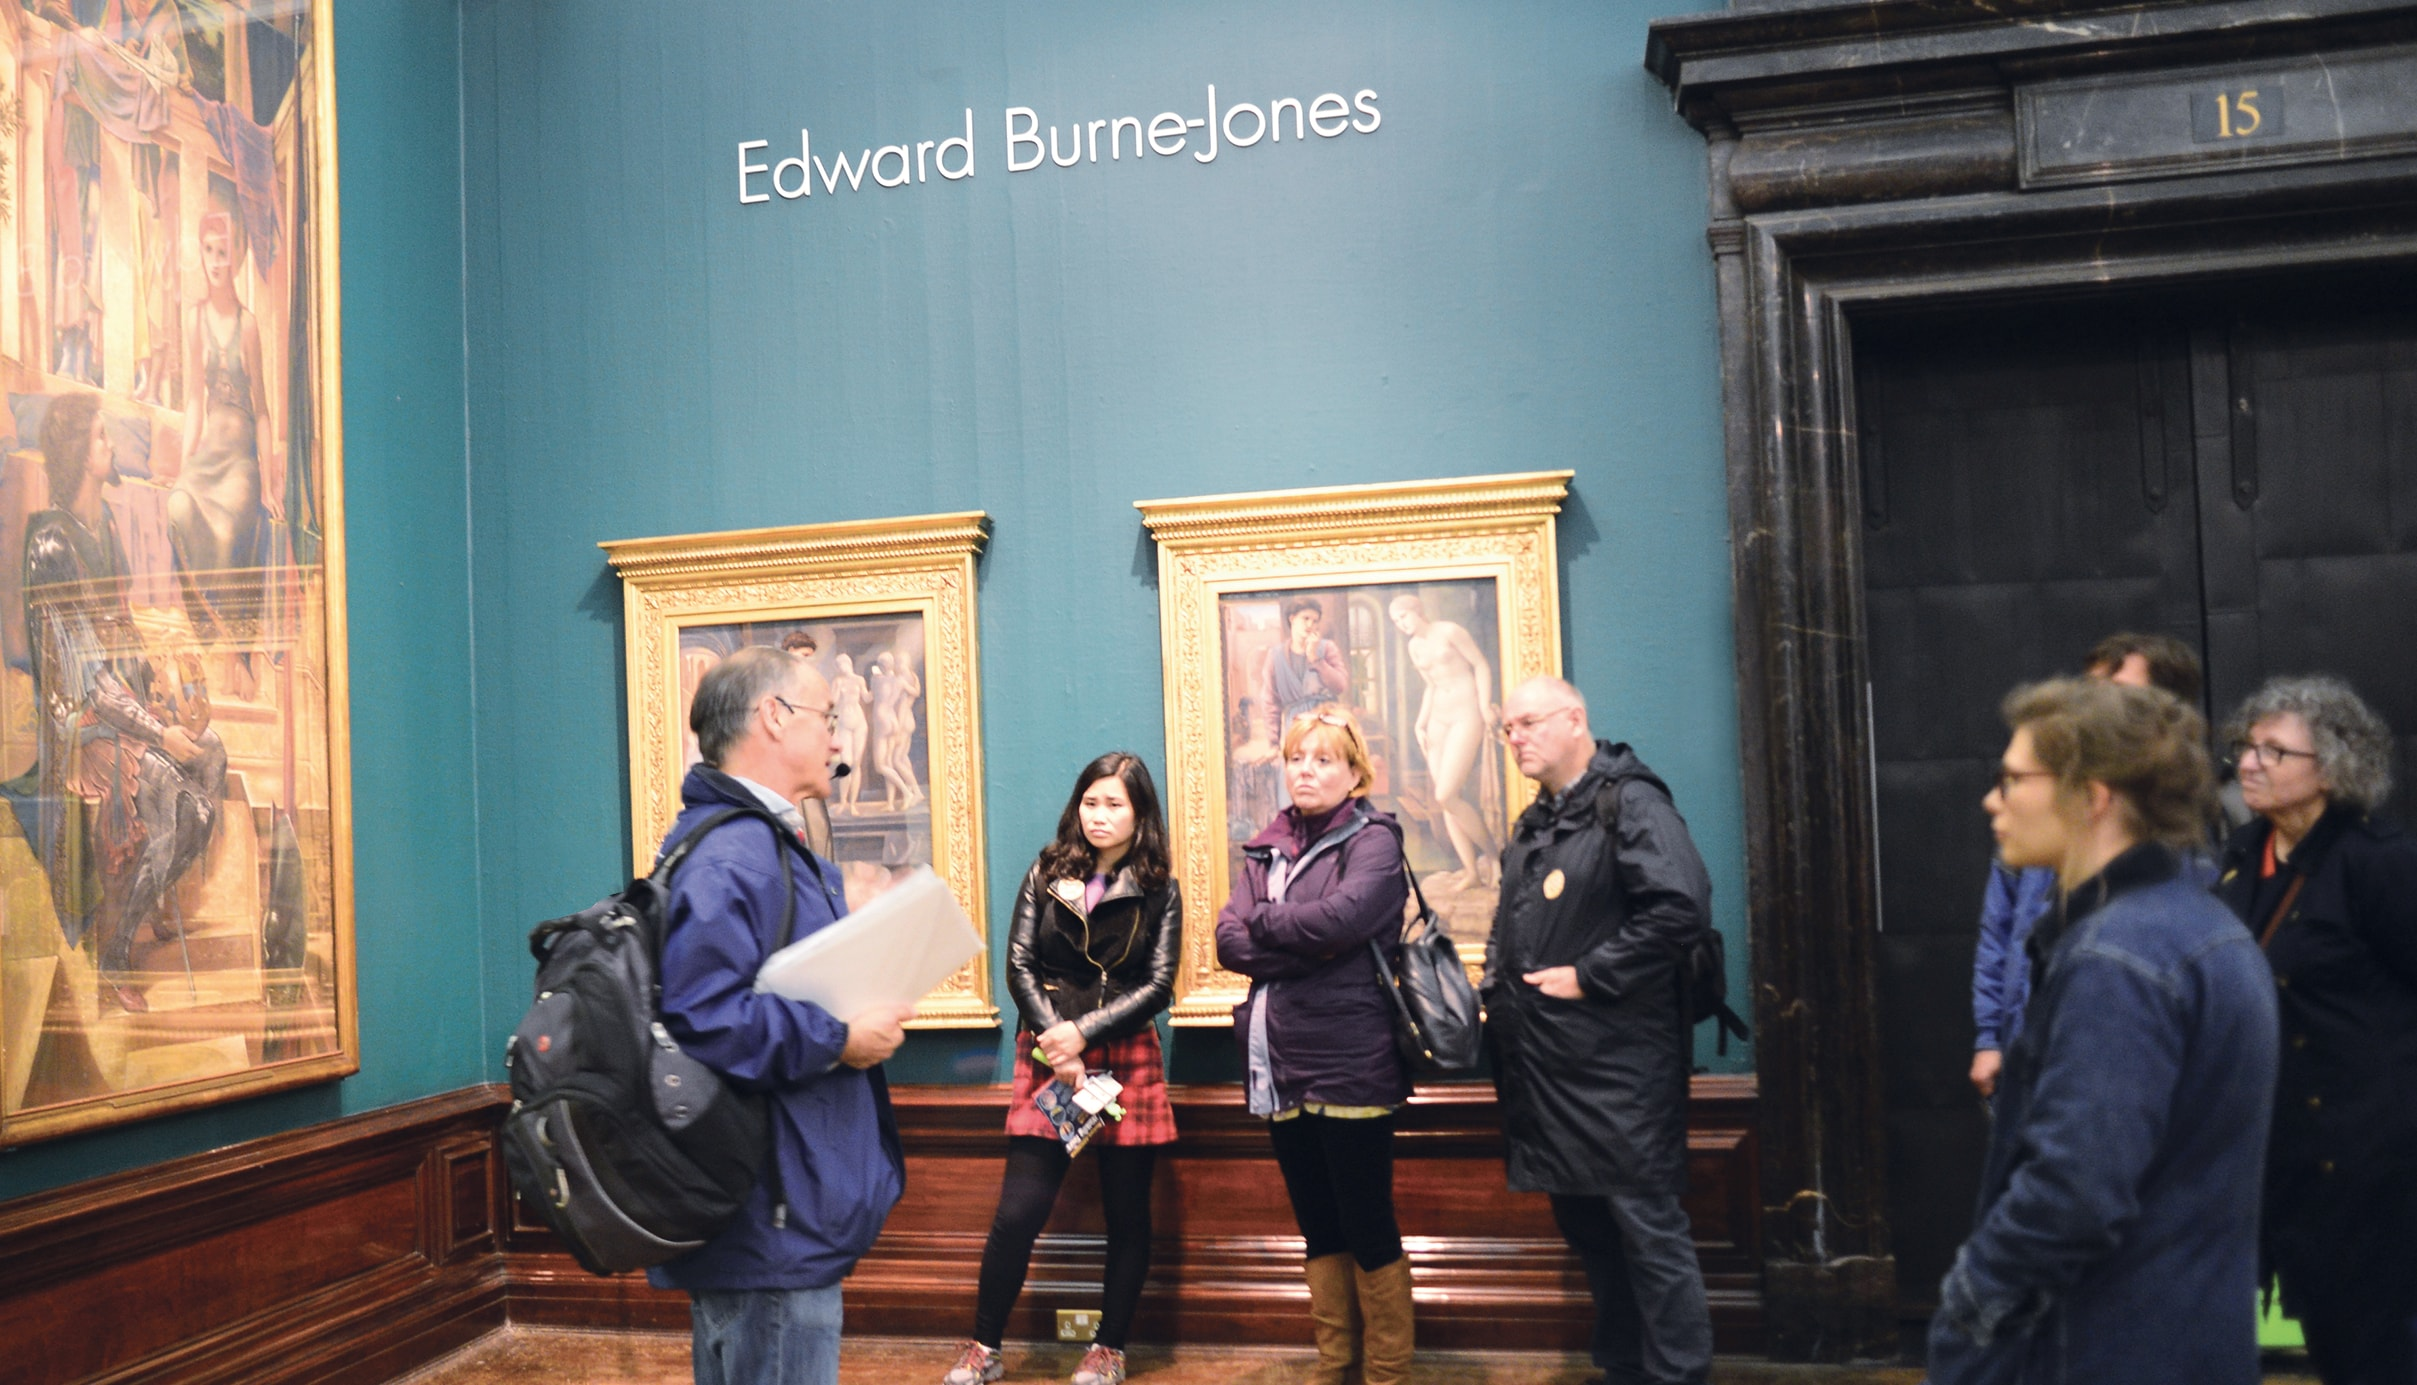 Positively Birmingham Tour No. 2 – In the footsteps of Sir Edward Burne-Jones